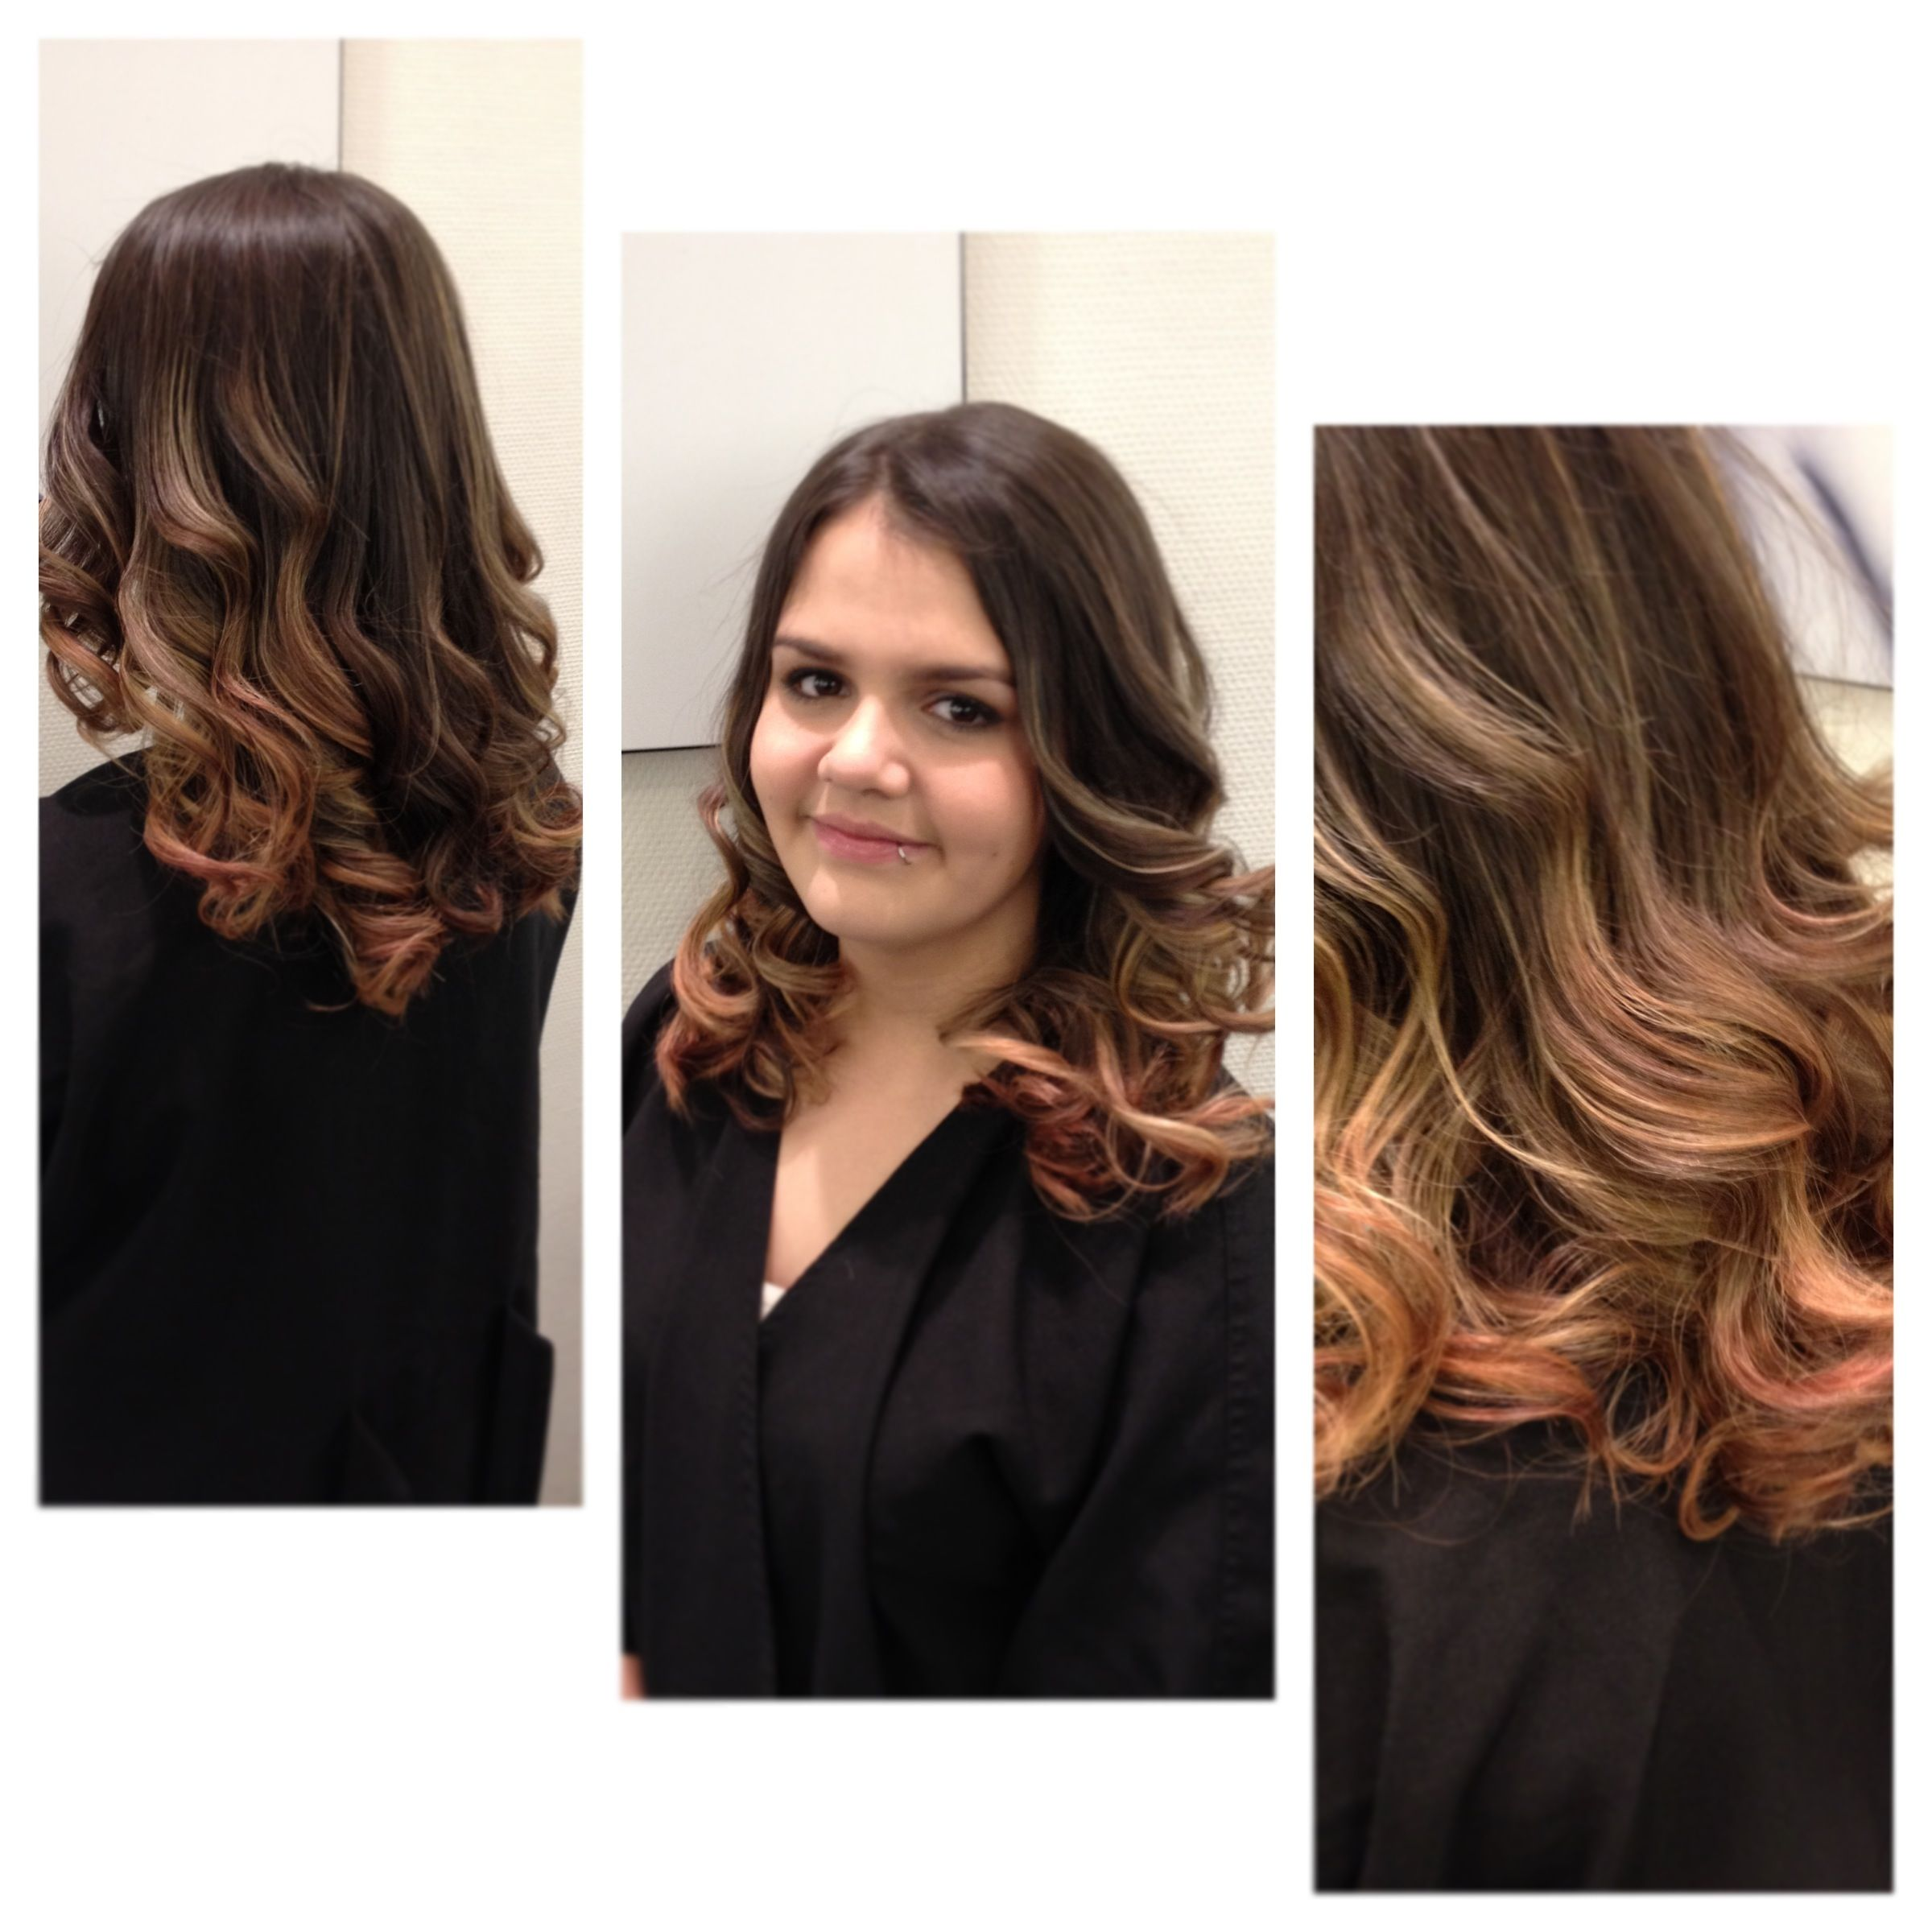 Red and blonde ombré by Carver Johnson. I did this at Hennessey Salon and Spa in West Vancouver. Client had pre-existing red color, so we worked it into the ombré